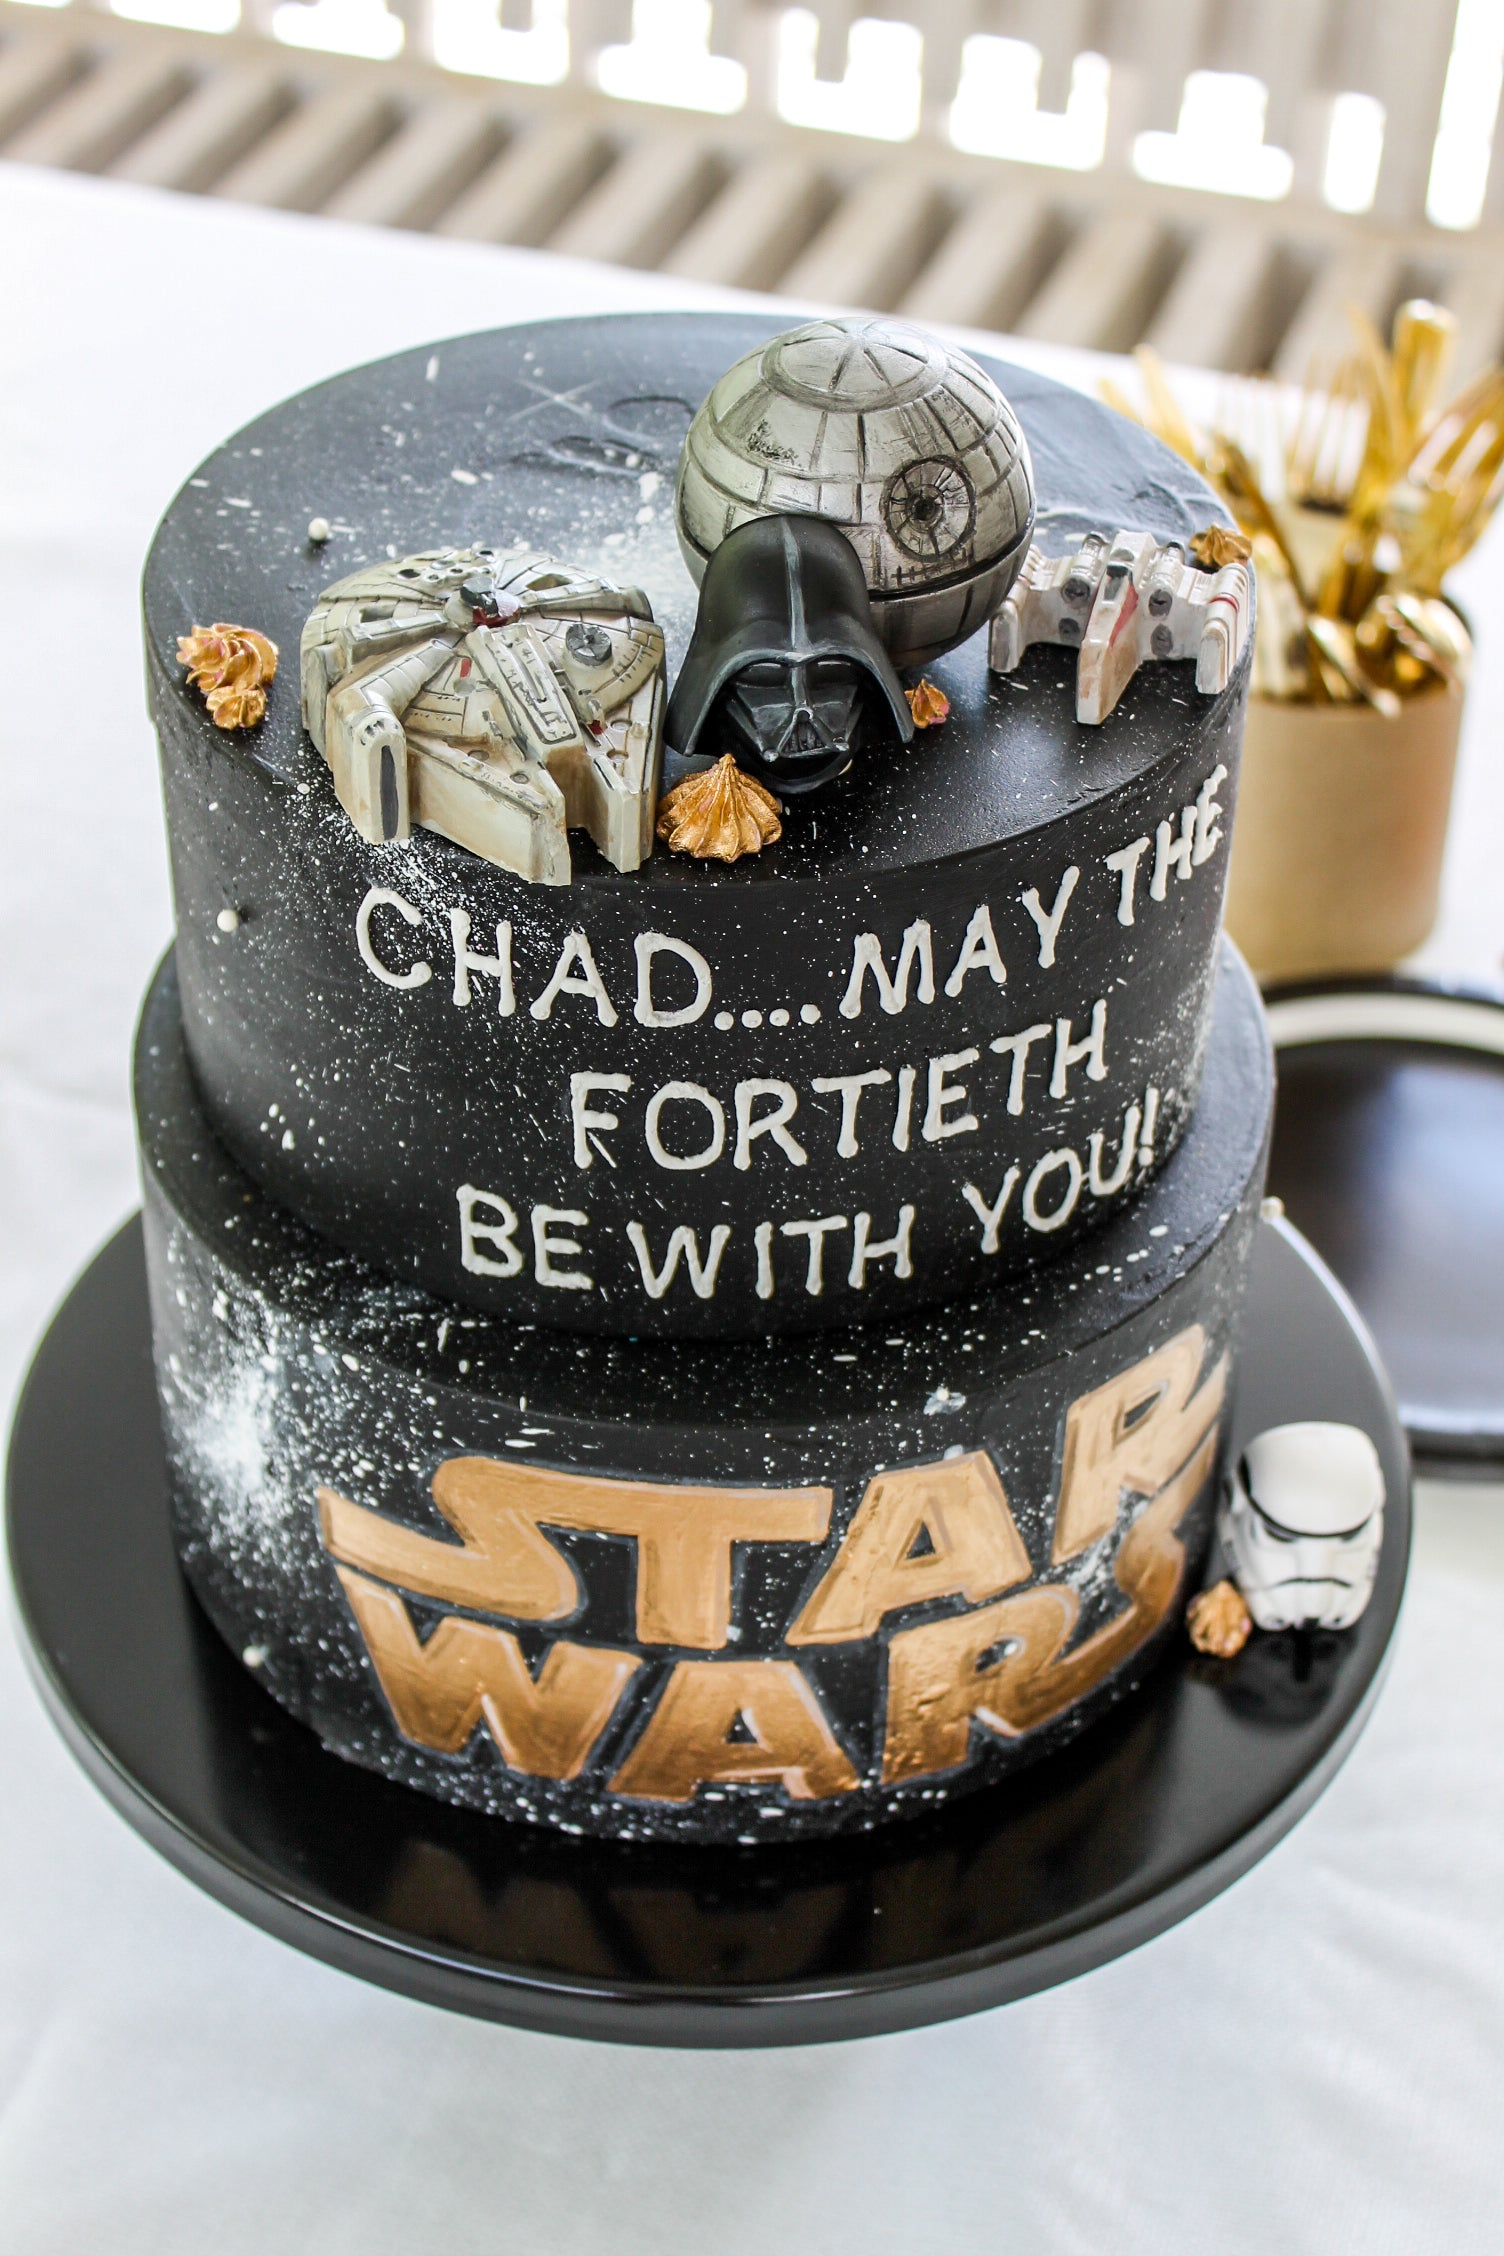 Marvelous Star Wars Cake Toppers Confection Deception Personalised Birthday Cards Fashionlily Jamesorg